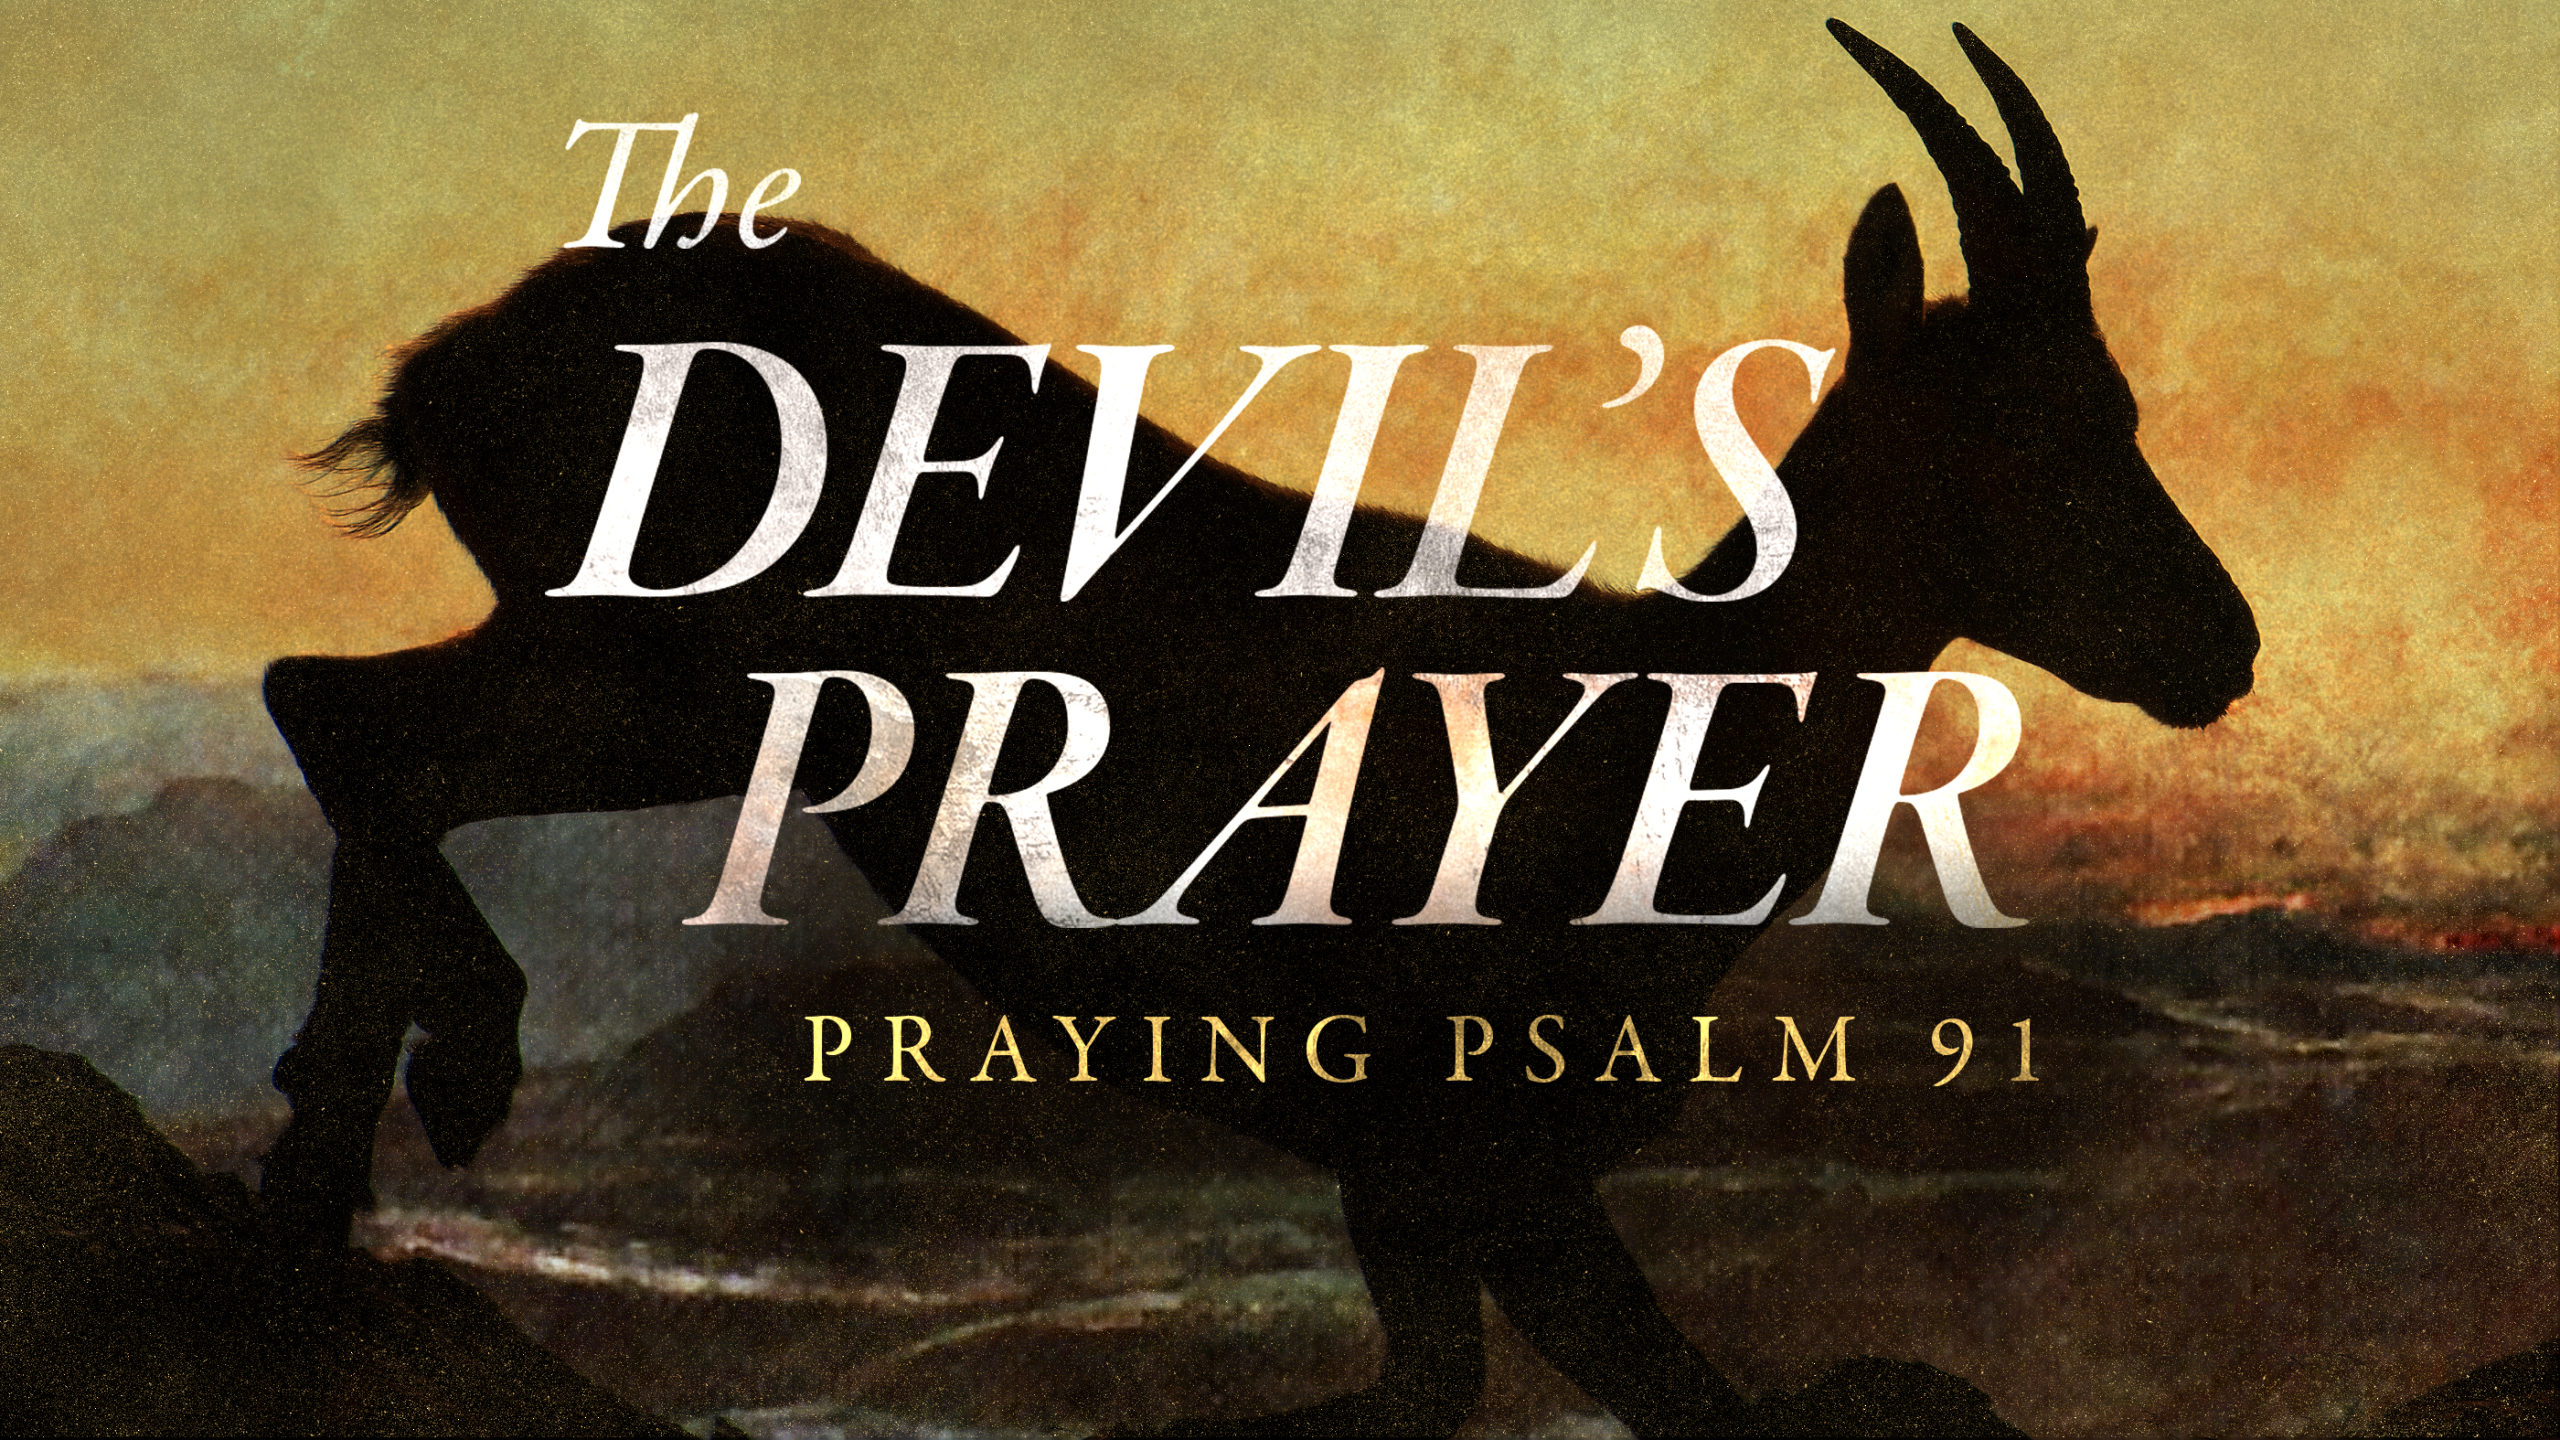 The Devil's Prayer – Praying Psalm 91